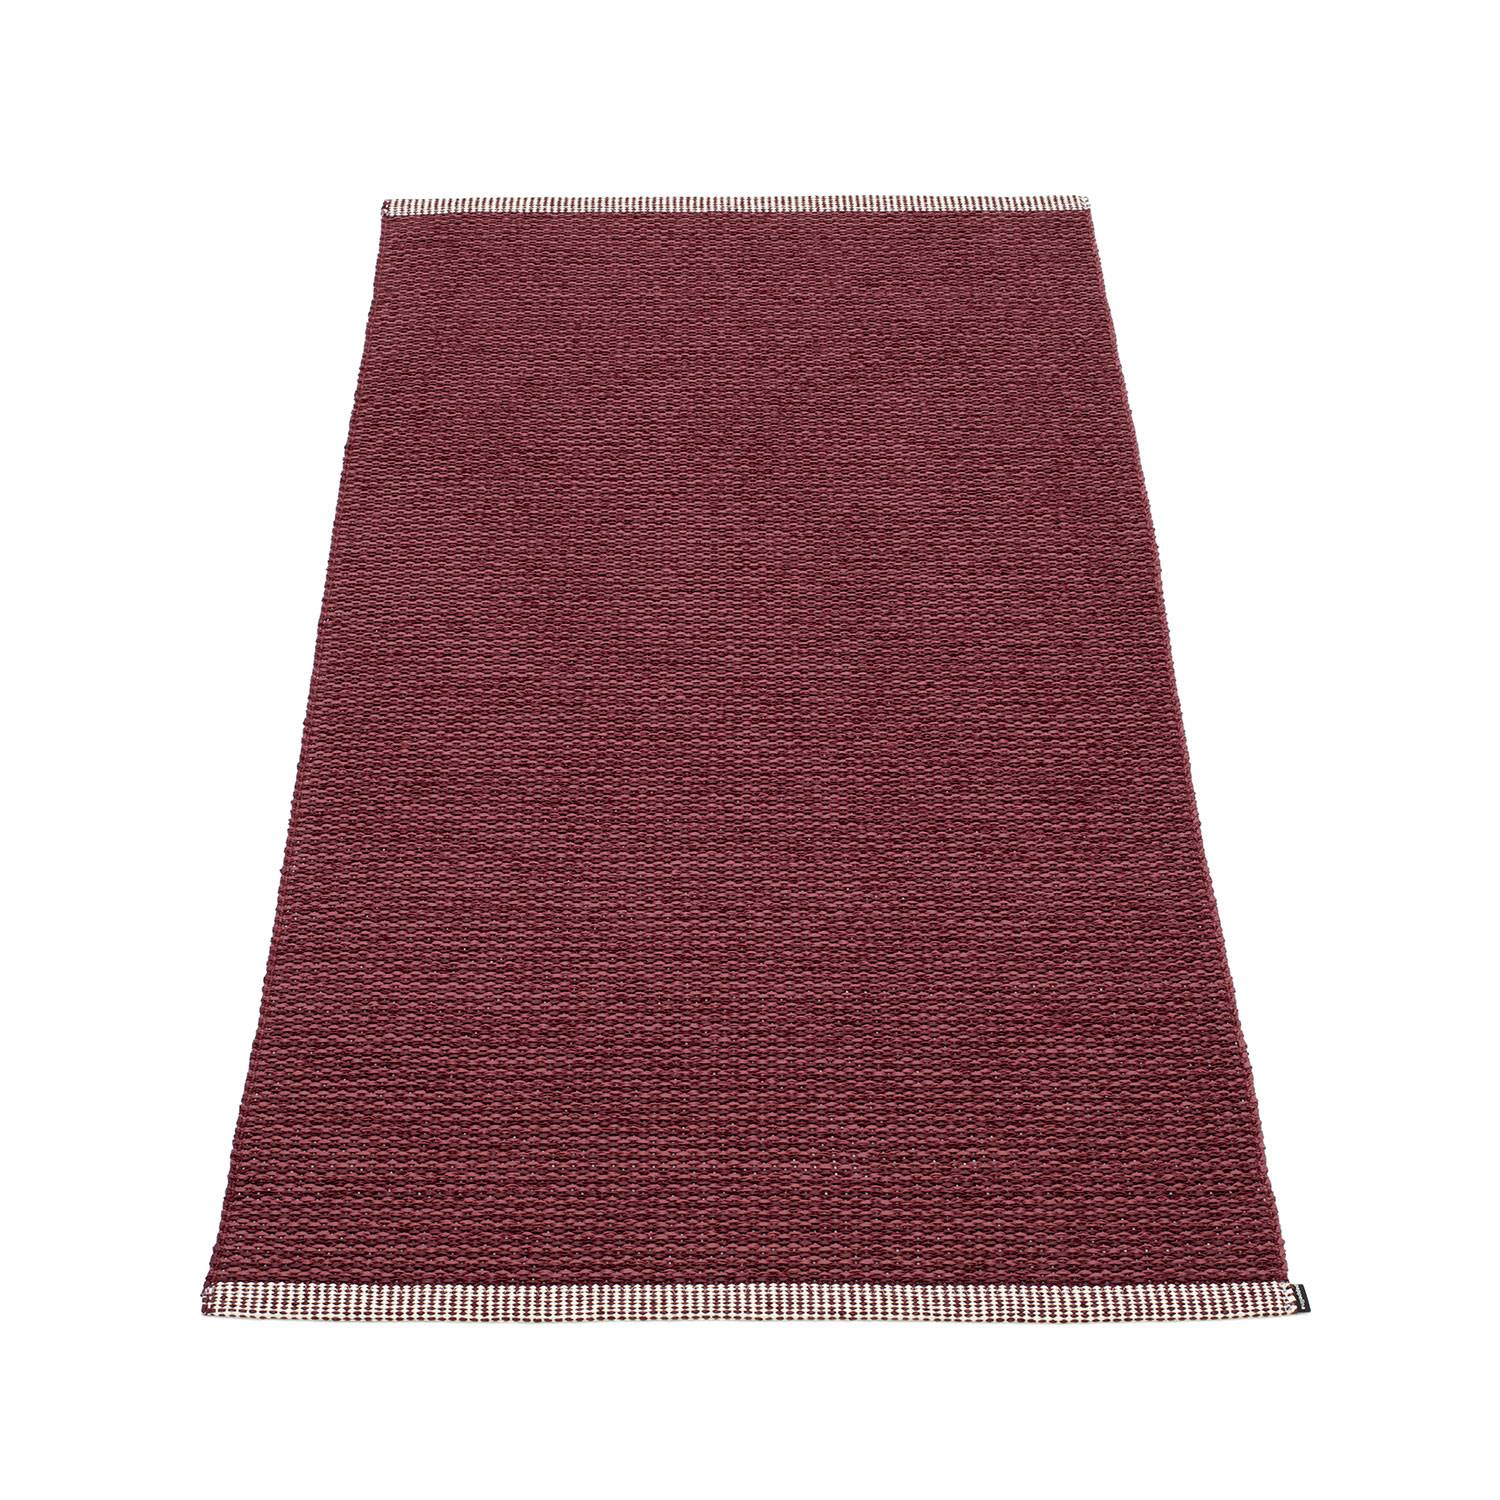 Pappelina Mono Matto 85x160cm, Zinfandel/Rose Taupe